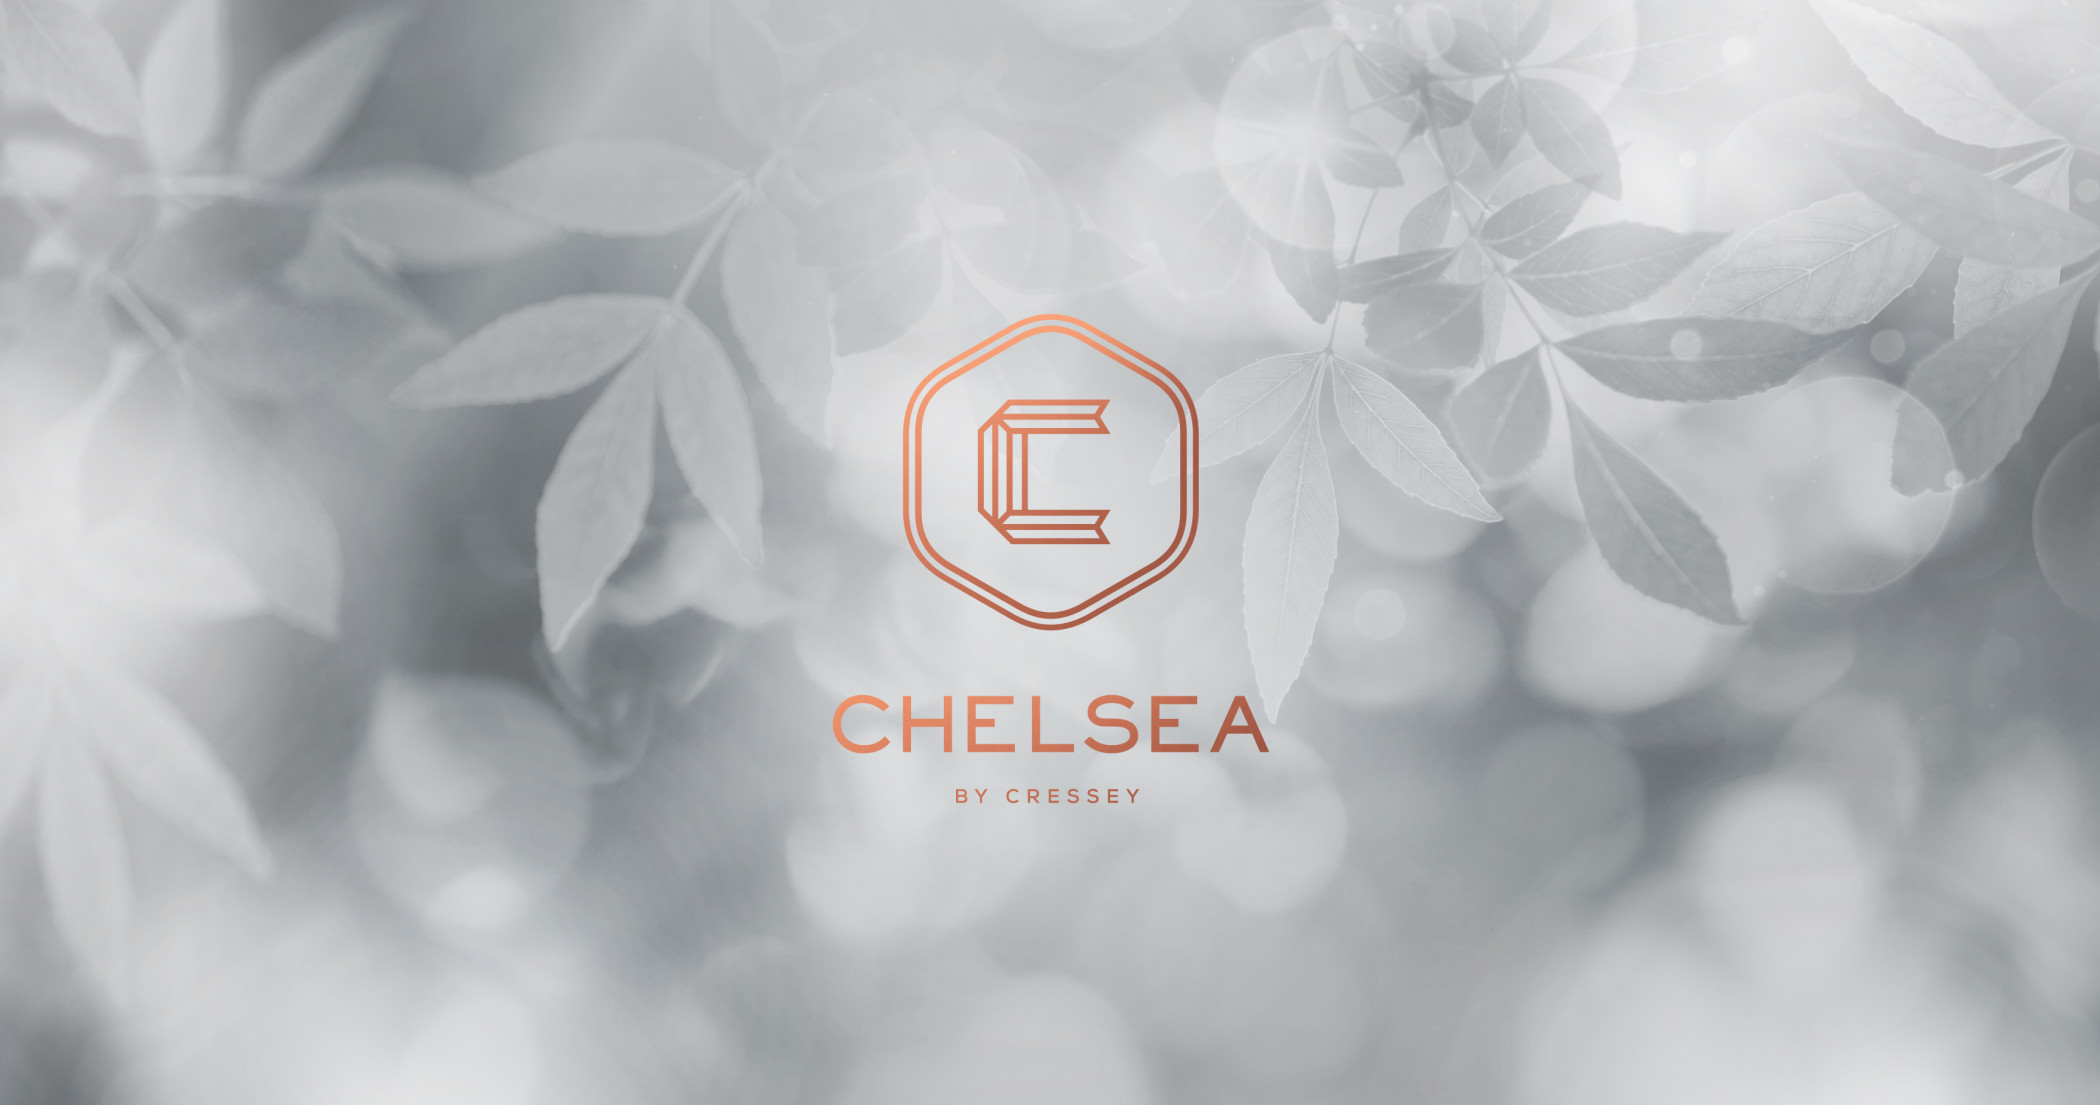 Chelsea by cressey